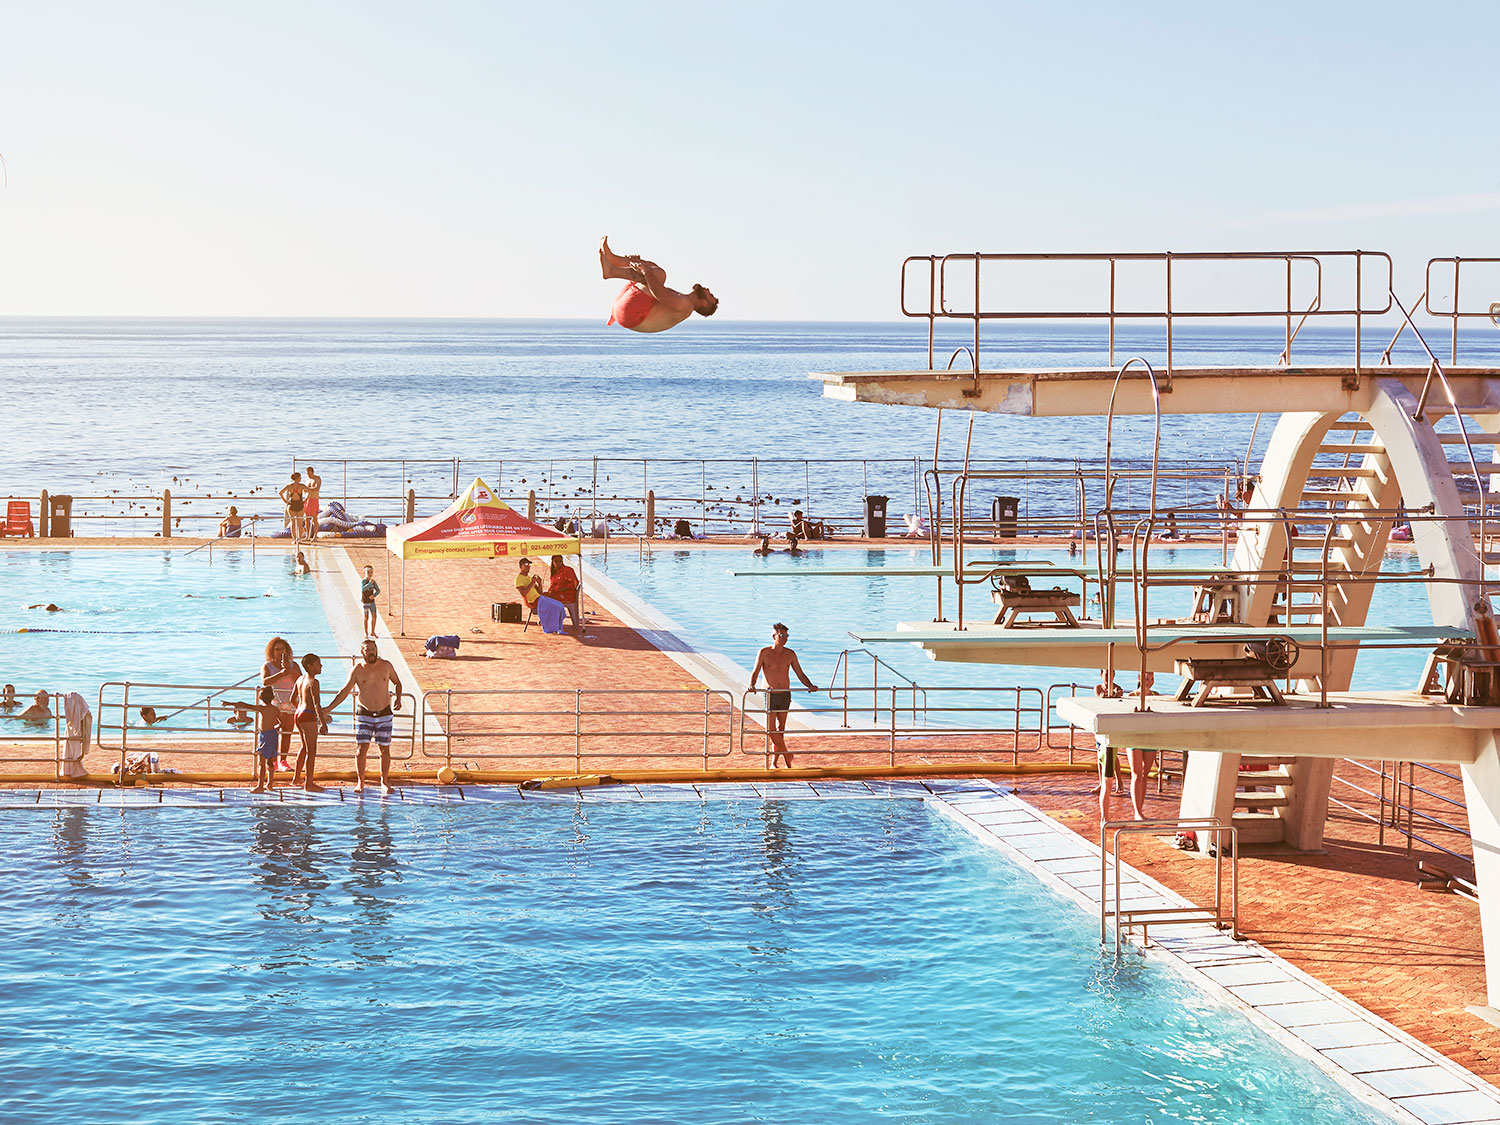 The public pool during drought  / Sea Point, Cape Town / Photo by Donald Michael Chambers /